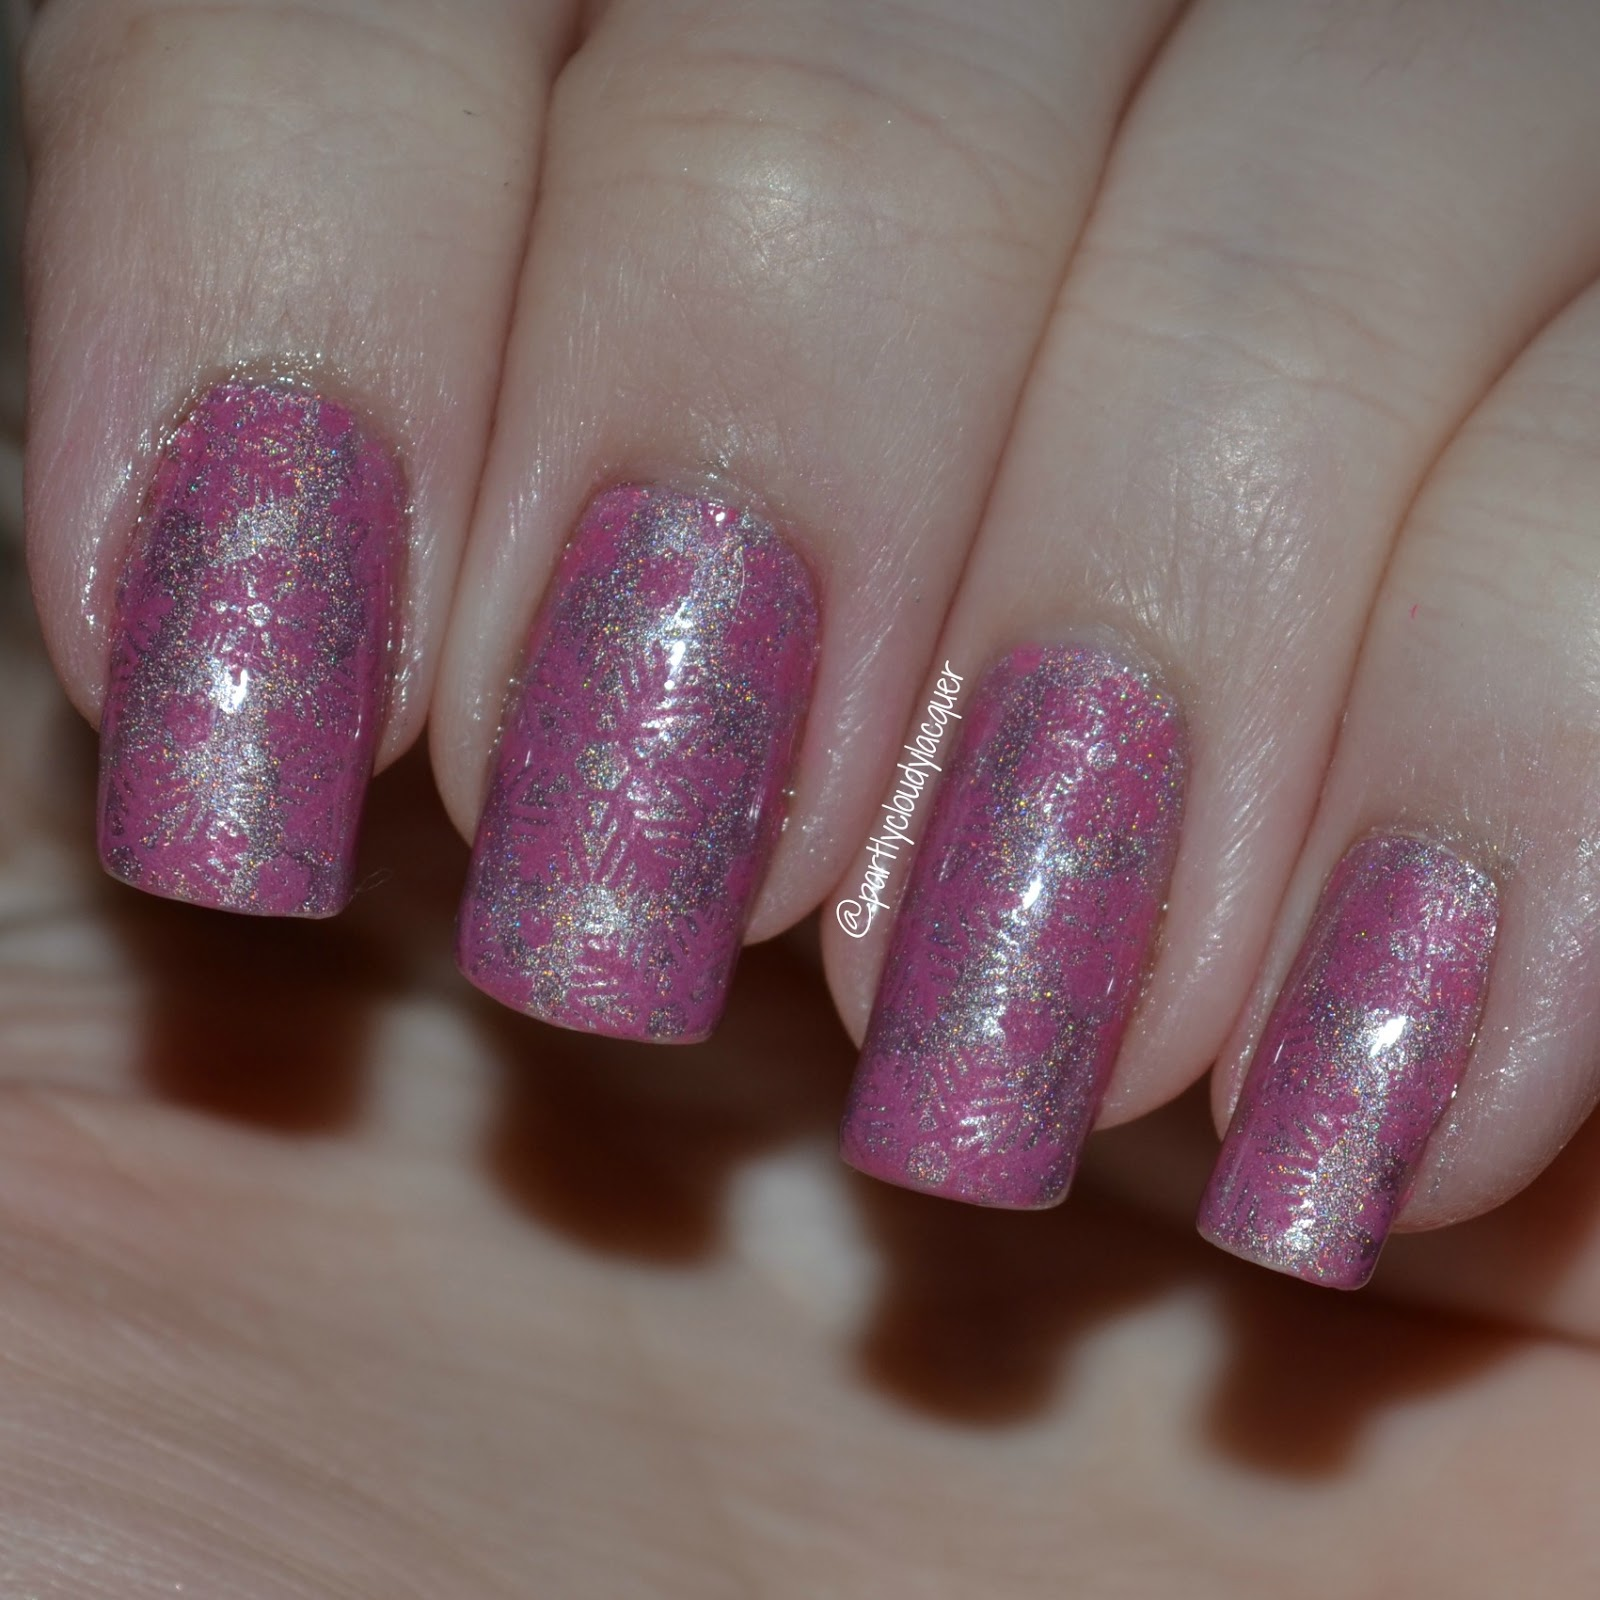 Twinsie Tuesday: Pink Holiday Nails | Partly Cloudy With a Chance of ...